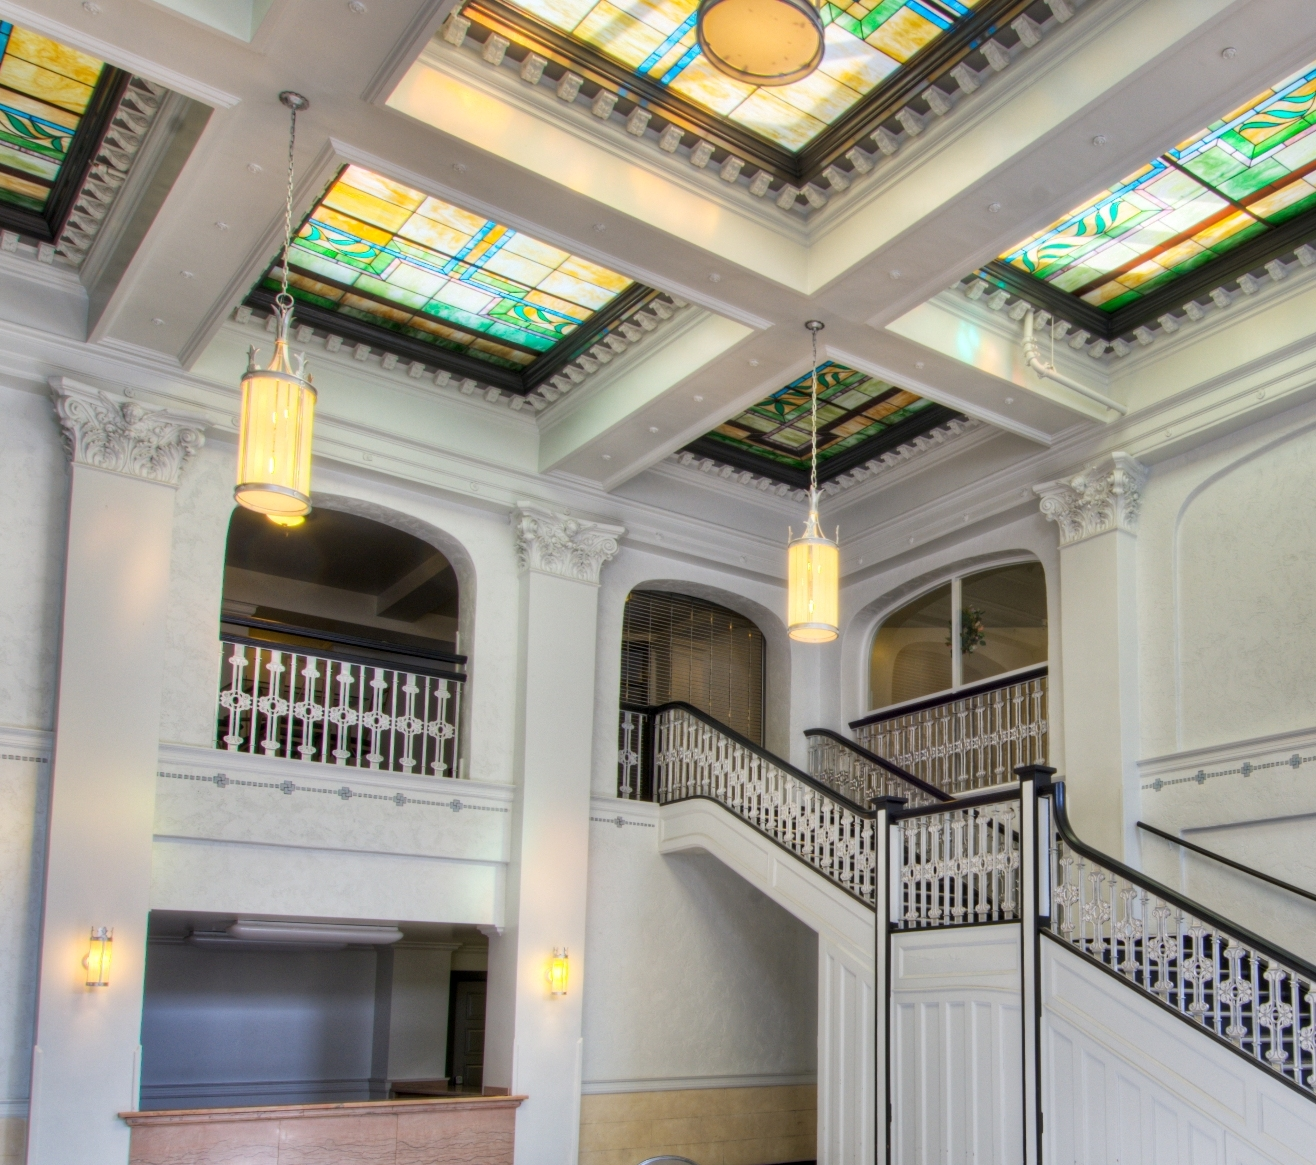 The restored lobby of the Northern Hotel in Fort Collins, Colorado